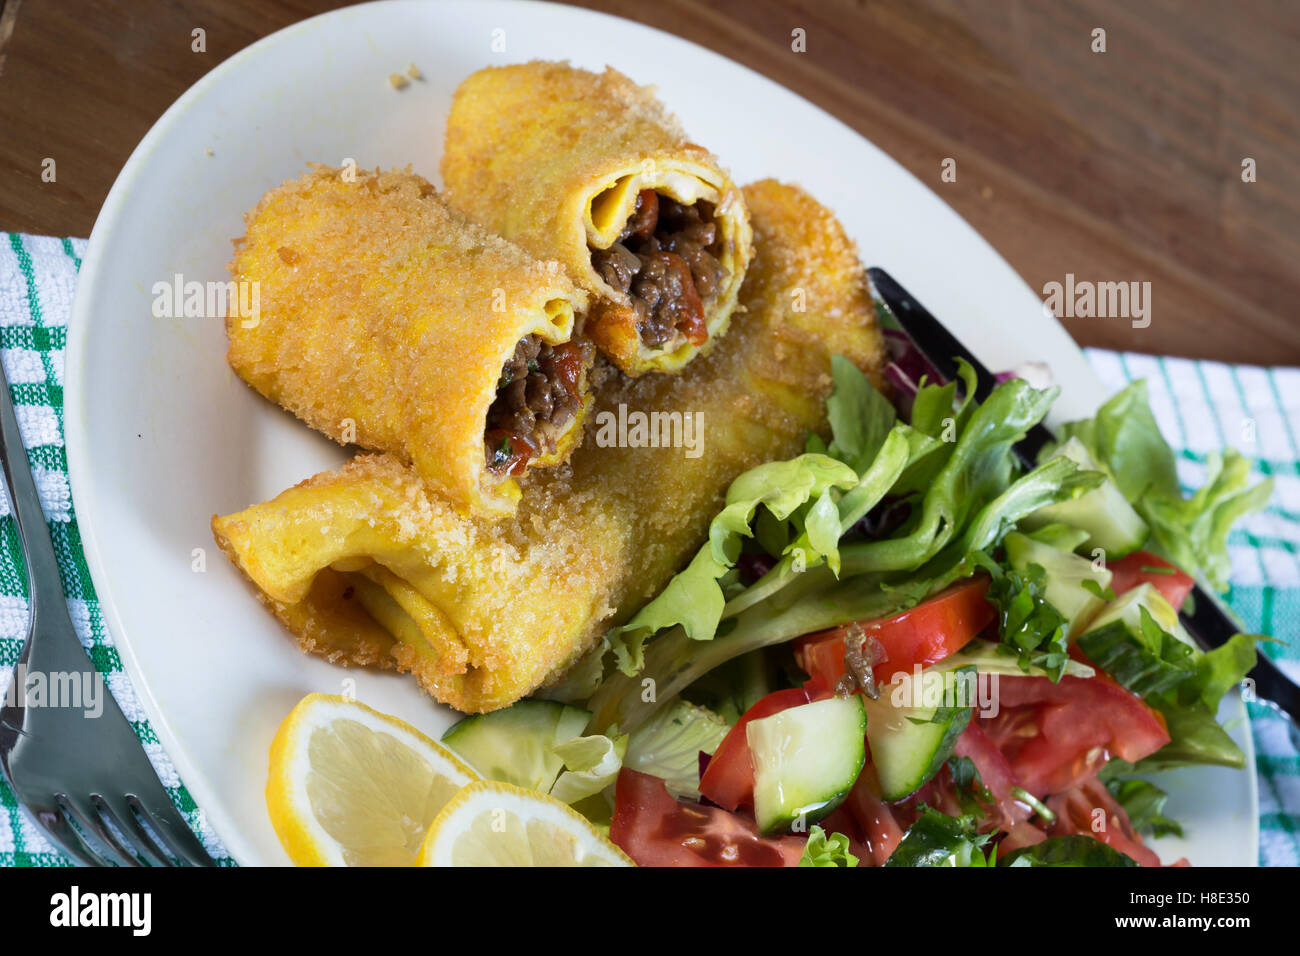 A plated meal of traditional Turkish Hunters Pastry (Avci Boreqi) with a fresh mixed side salad - Stock Image